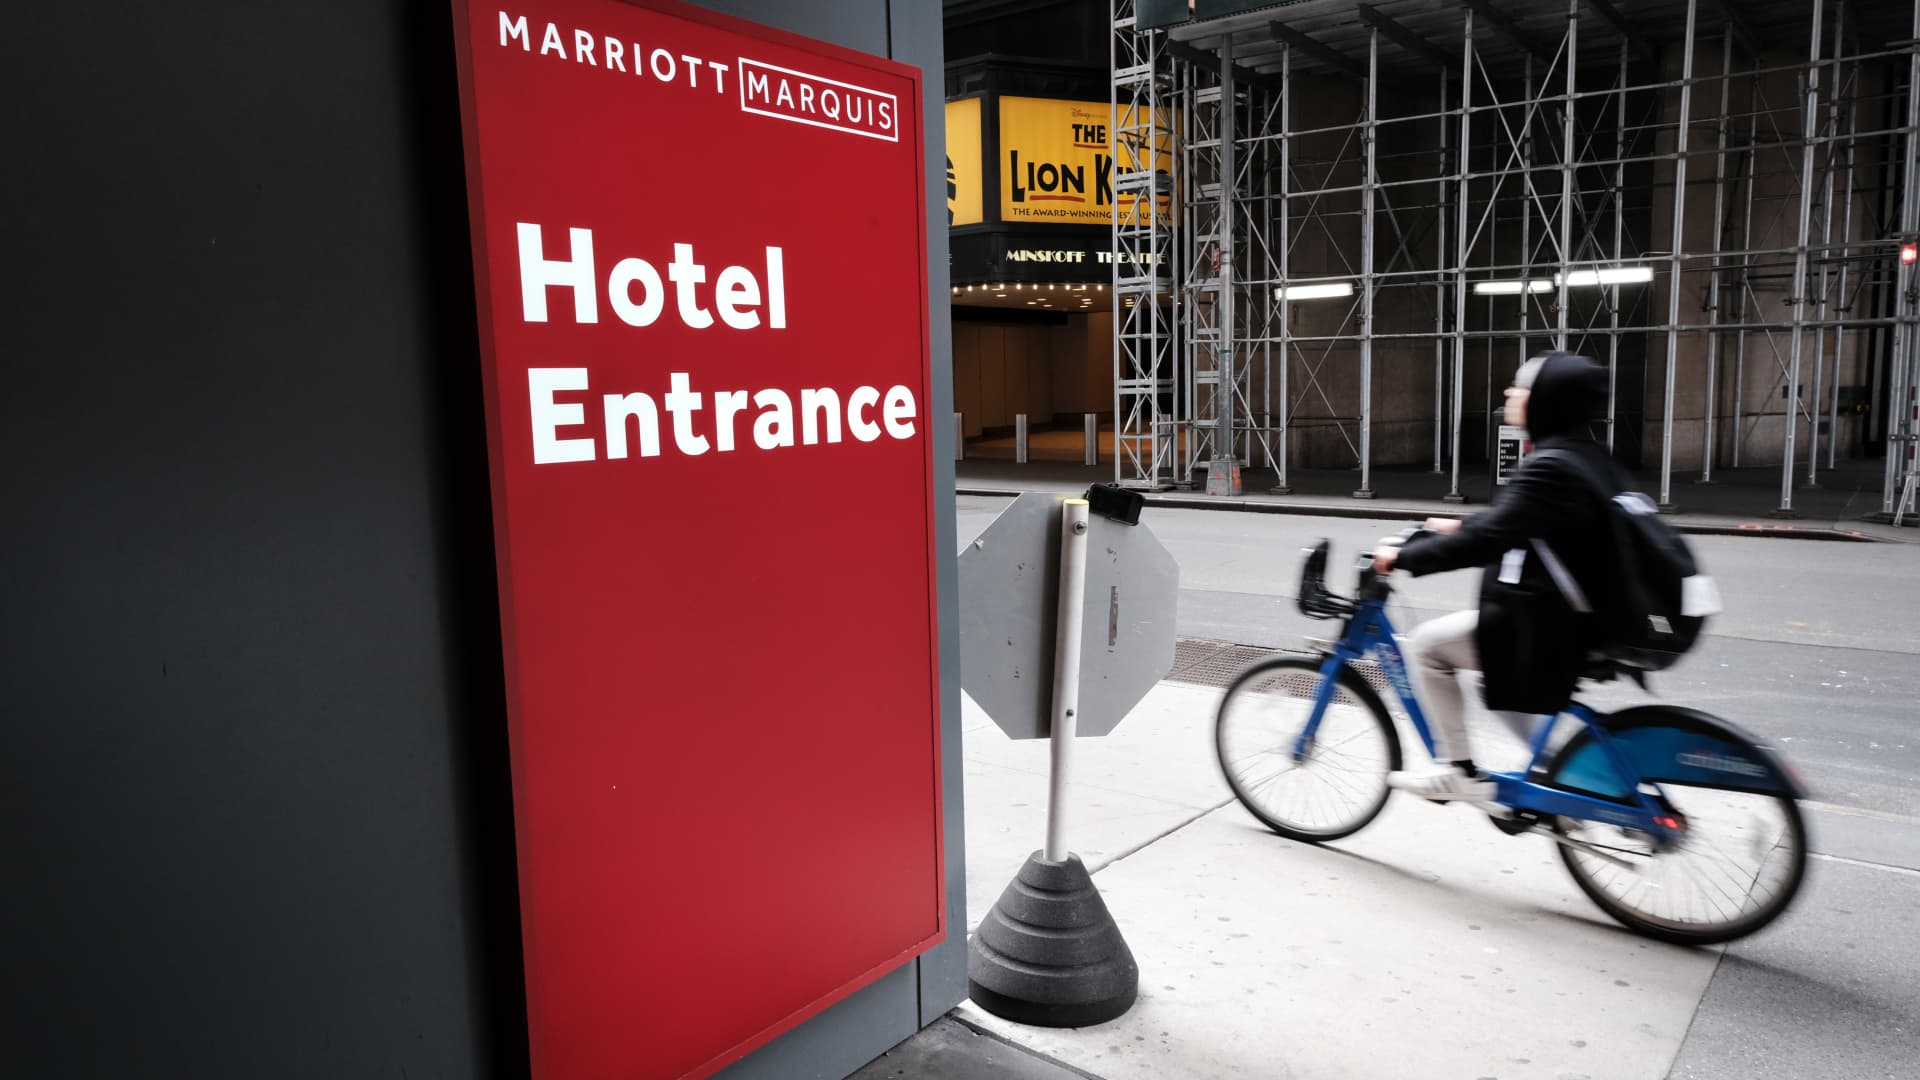 A person rides a bike past the Marriott hotel in Times Square, New York.